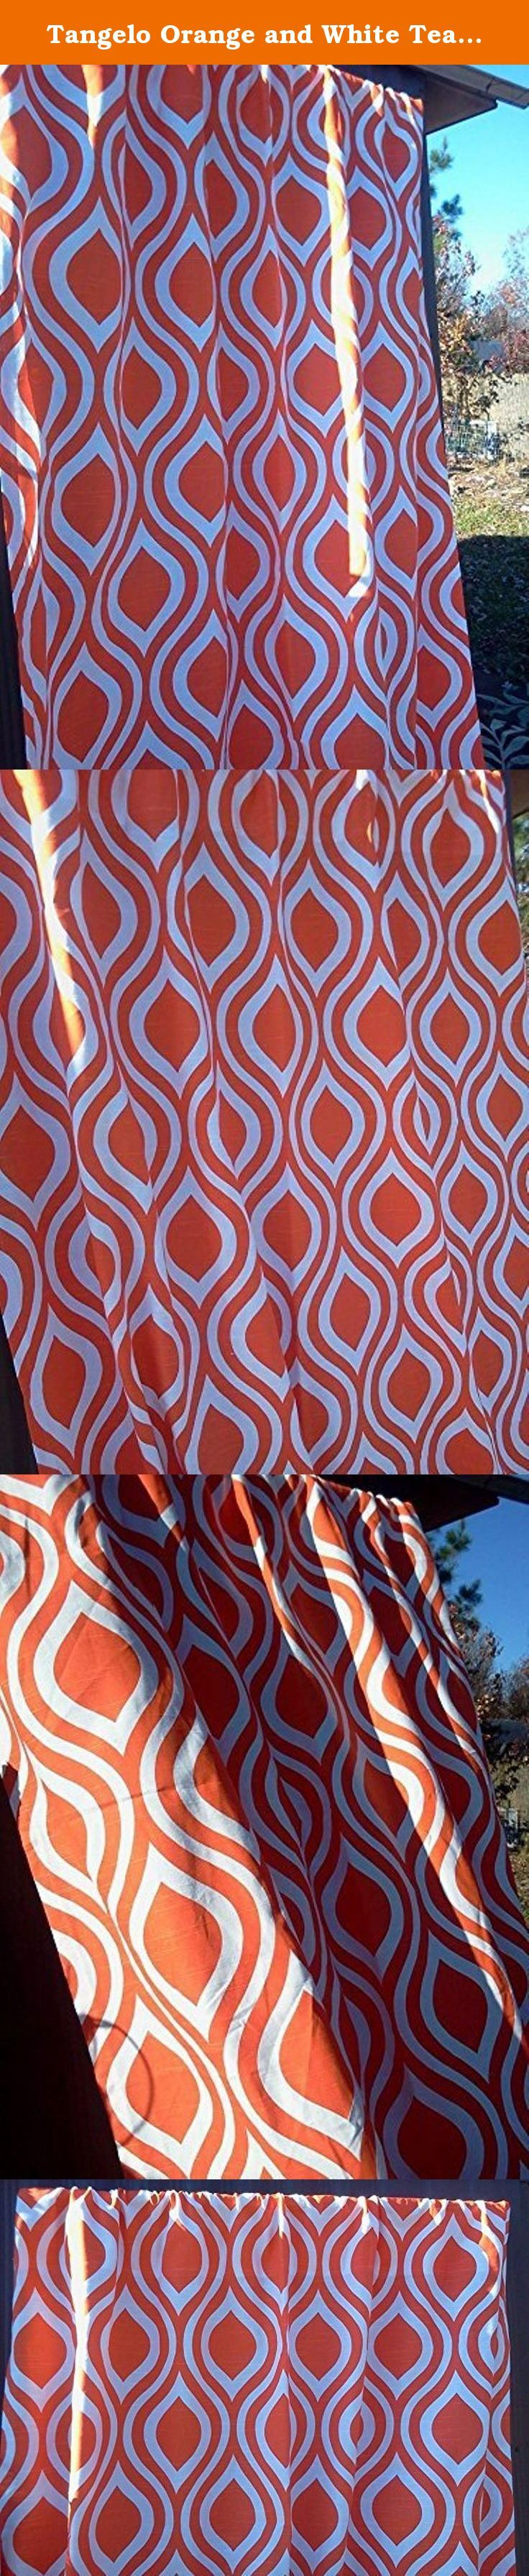 "Tangelo Orange and White Teardrop Full Length Curtains, Orange Teardrop Valance Curtains, 100% quality cotton Slub Premier Prints drapery fabric These curtains are 84"" Long by 52"" Wide. Tangelo Orange and White Full Length Teardrop Curtains, 52"" Wide by 84"" Long; 100% quality cotton duck, Premier Prints home décor weight drapery fabric. Please allow 7-14 days for delivery, as the curtains are handmade after your purchase to keep inventory costs low. Keeping inventory costs low helps keep…"